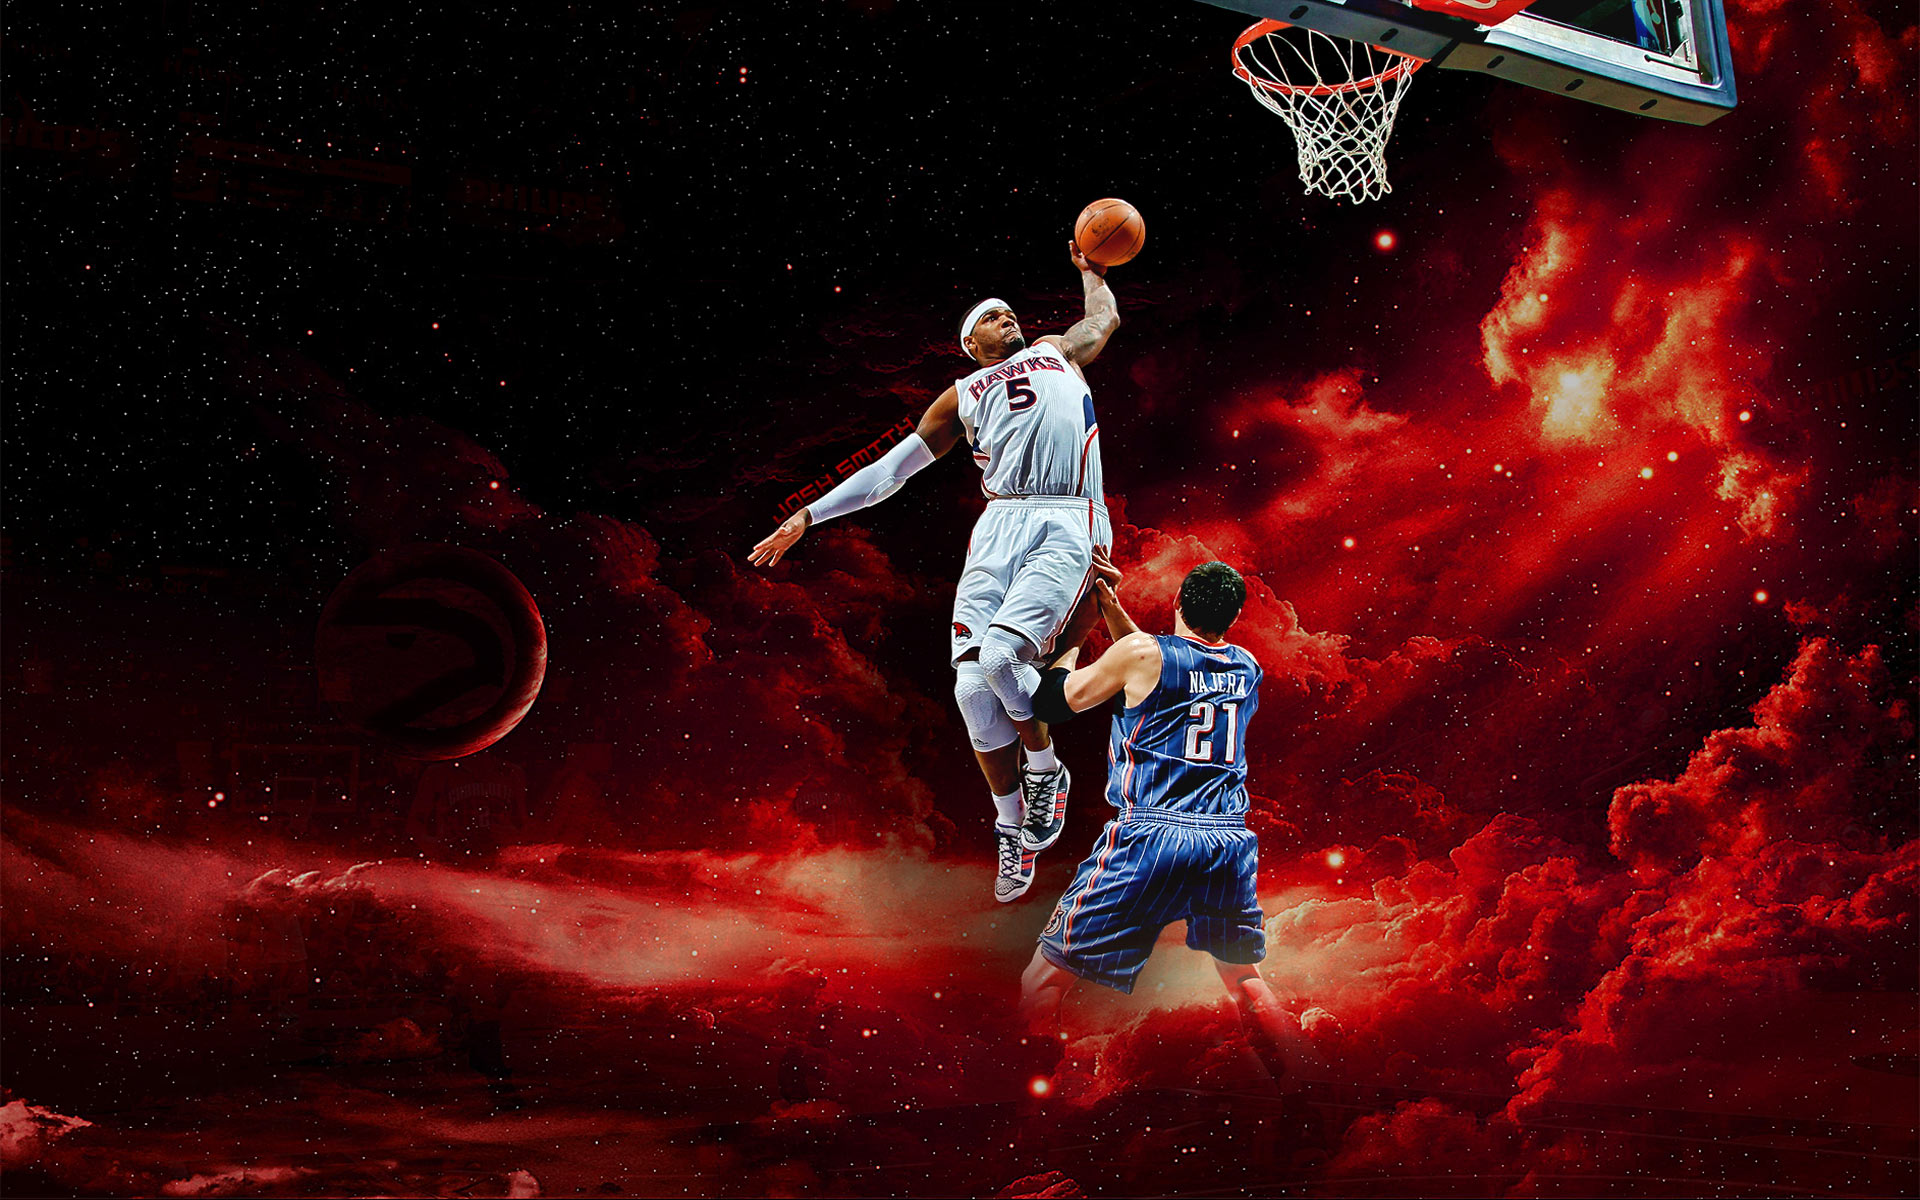 In-Gallery-Nba-Lebron-James-Nba-Lebron-James-wallpaper-wp3807048